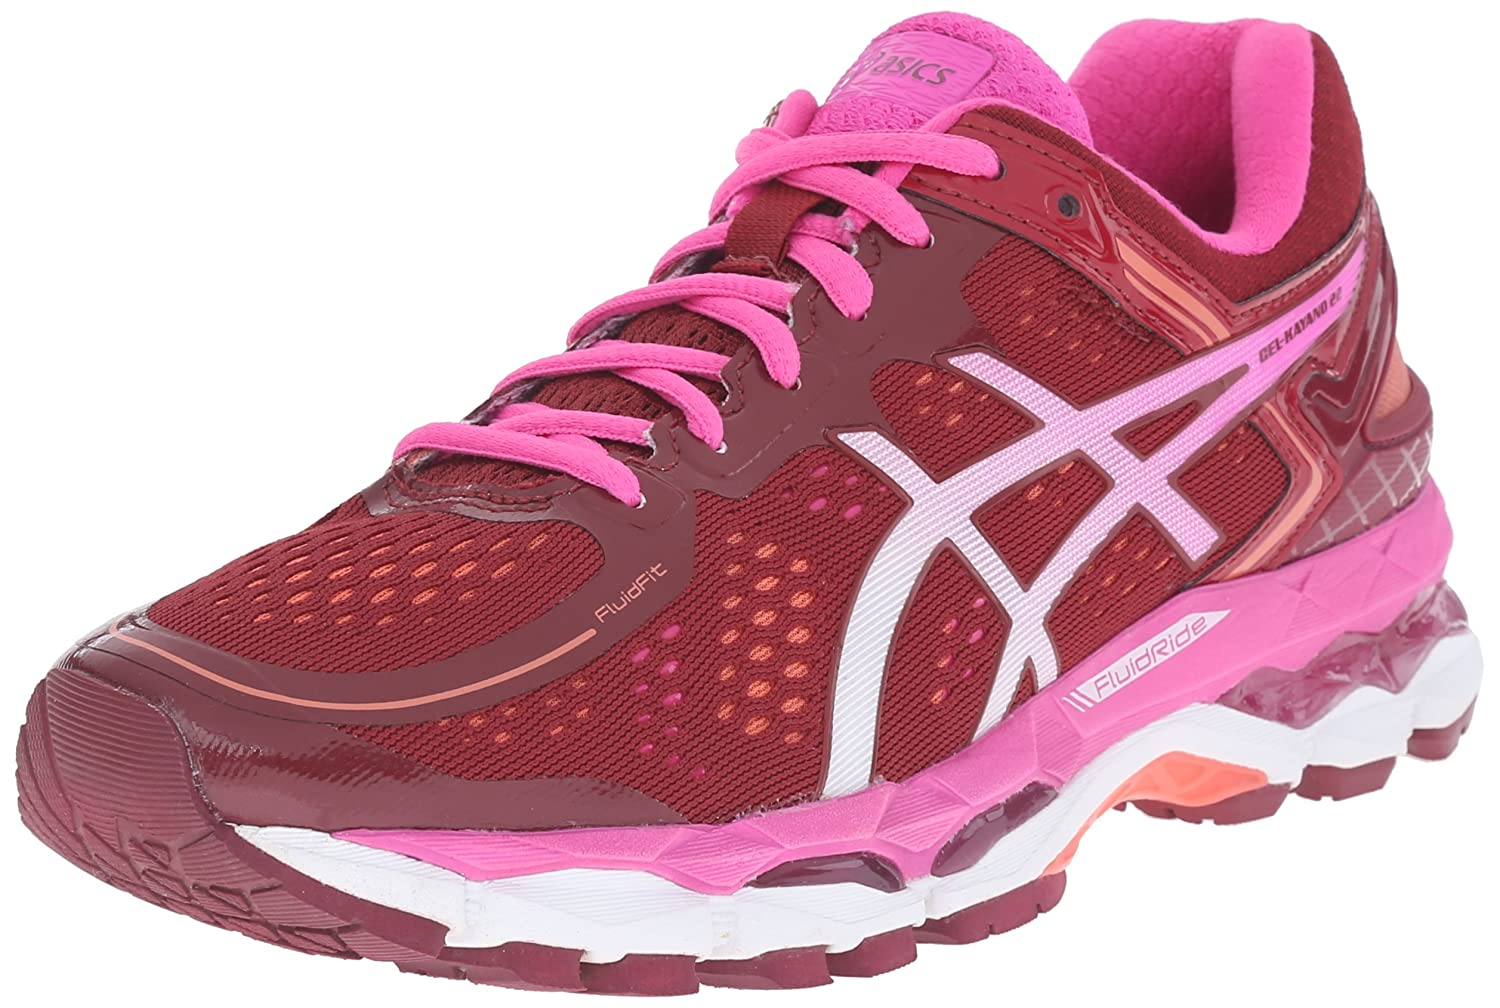 ASICS Women's GEL-Kayano 22 Running Shoe B00PY328VM 12.5 B(M) US|Deep Ruby/White/Pink Glow